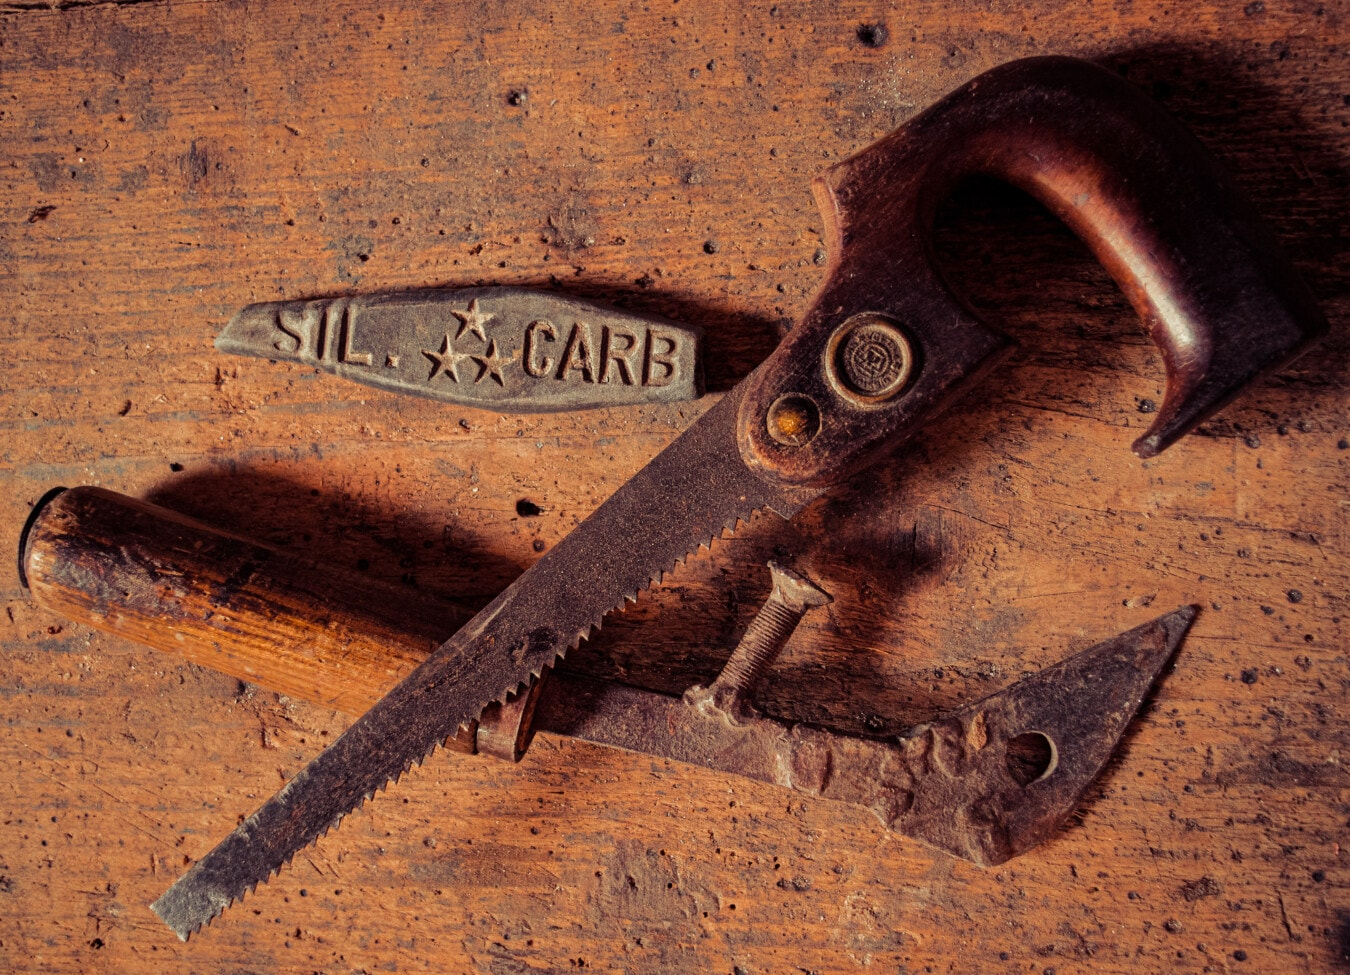 hand tool, vintage, old style, repair shop, saw, sawtooth, sawdust, stone, blade, iron